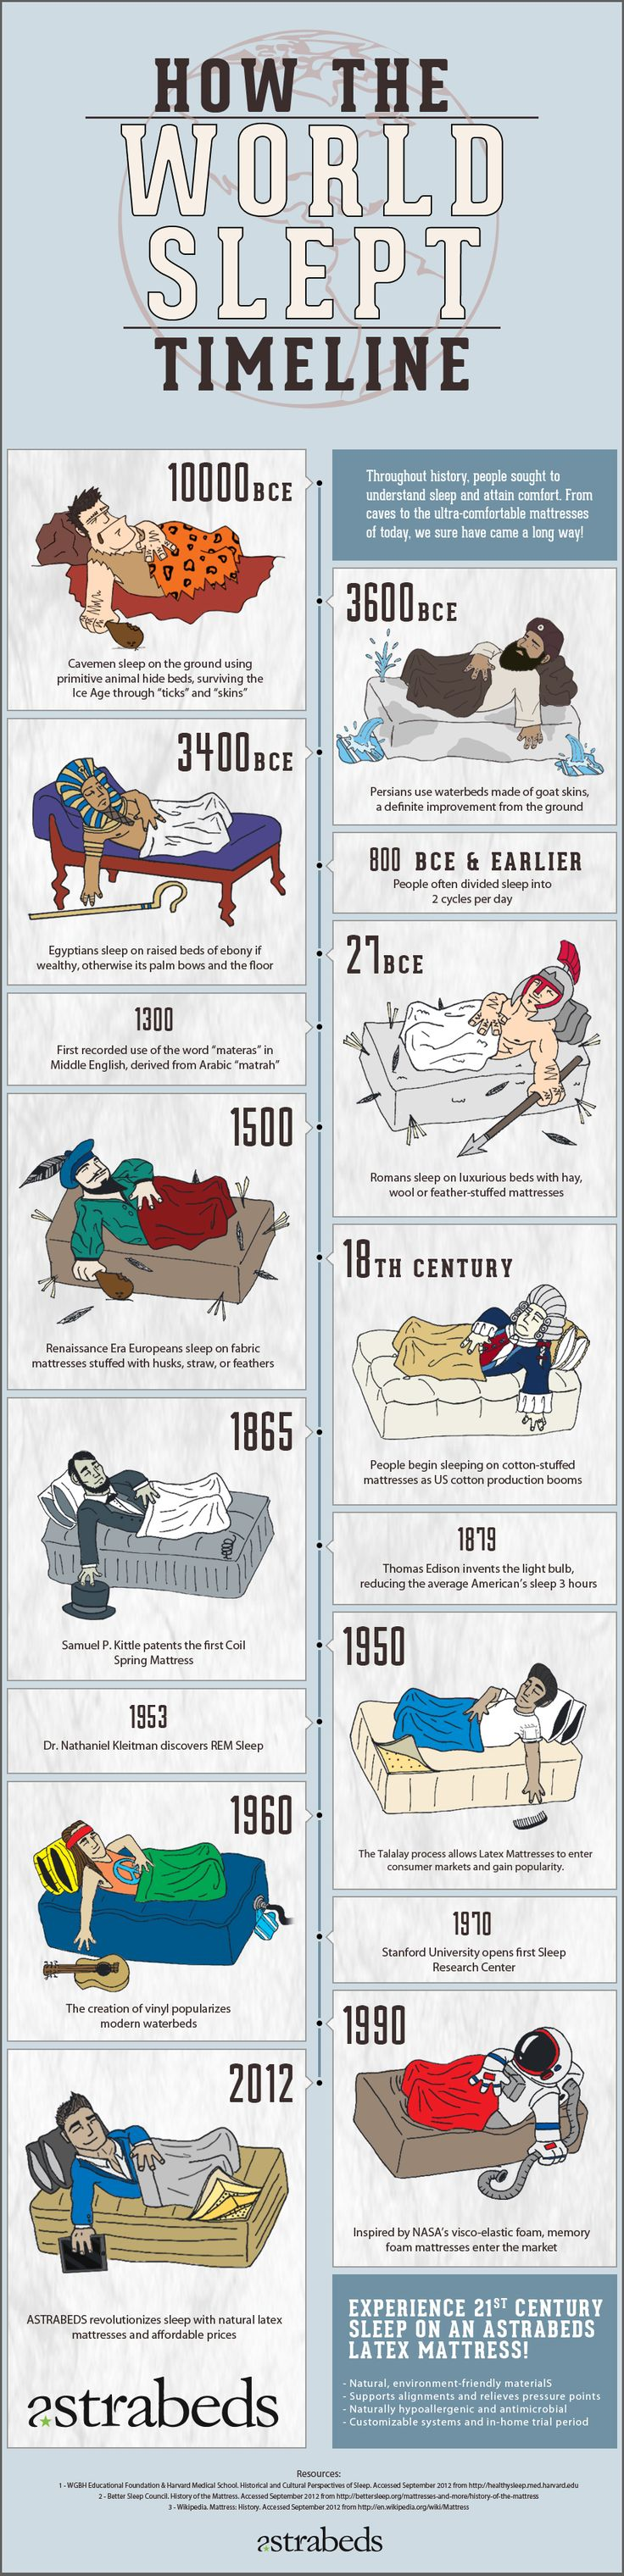 Astrabeds presents: How the World Slept Timeline - The History of Sleep - Very interesting infographic for you to learn all about how people in history used to sleep!